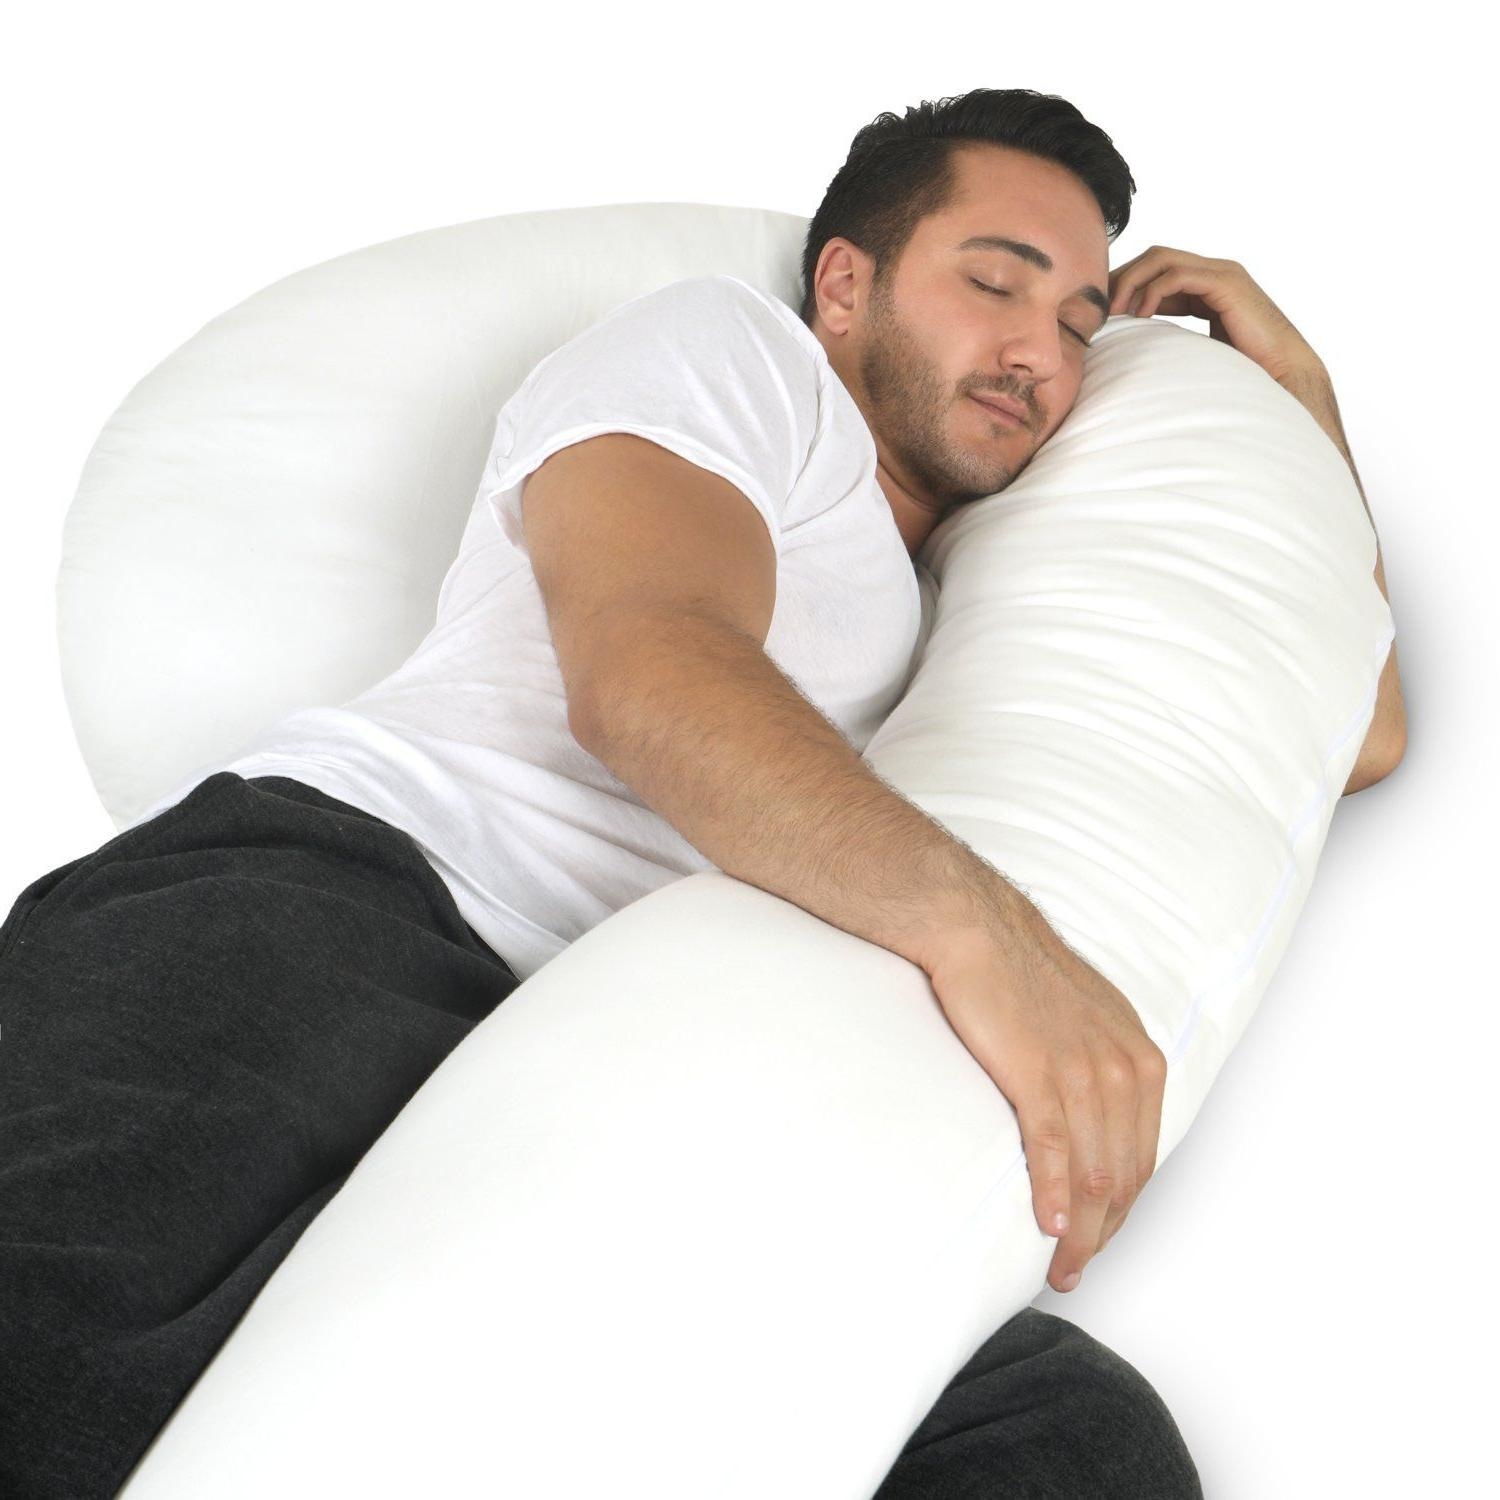 Full Body Pillow - C Shaped Bed Pillow for Men & Women by Ph